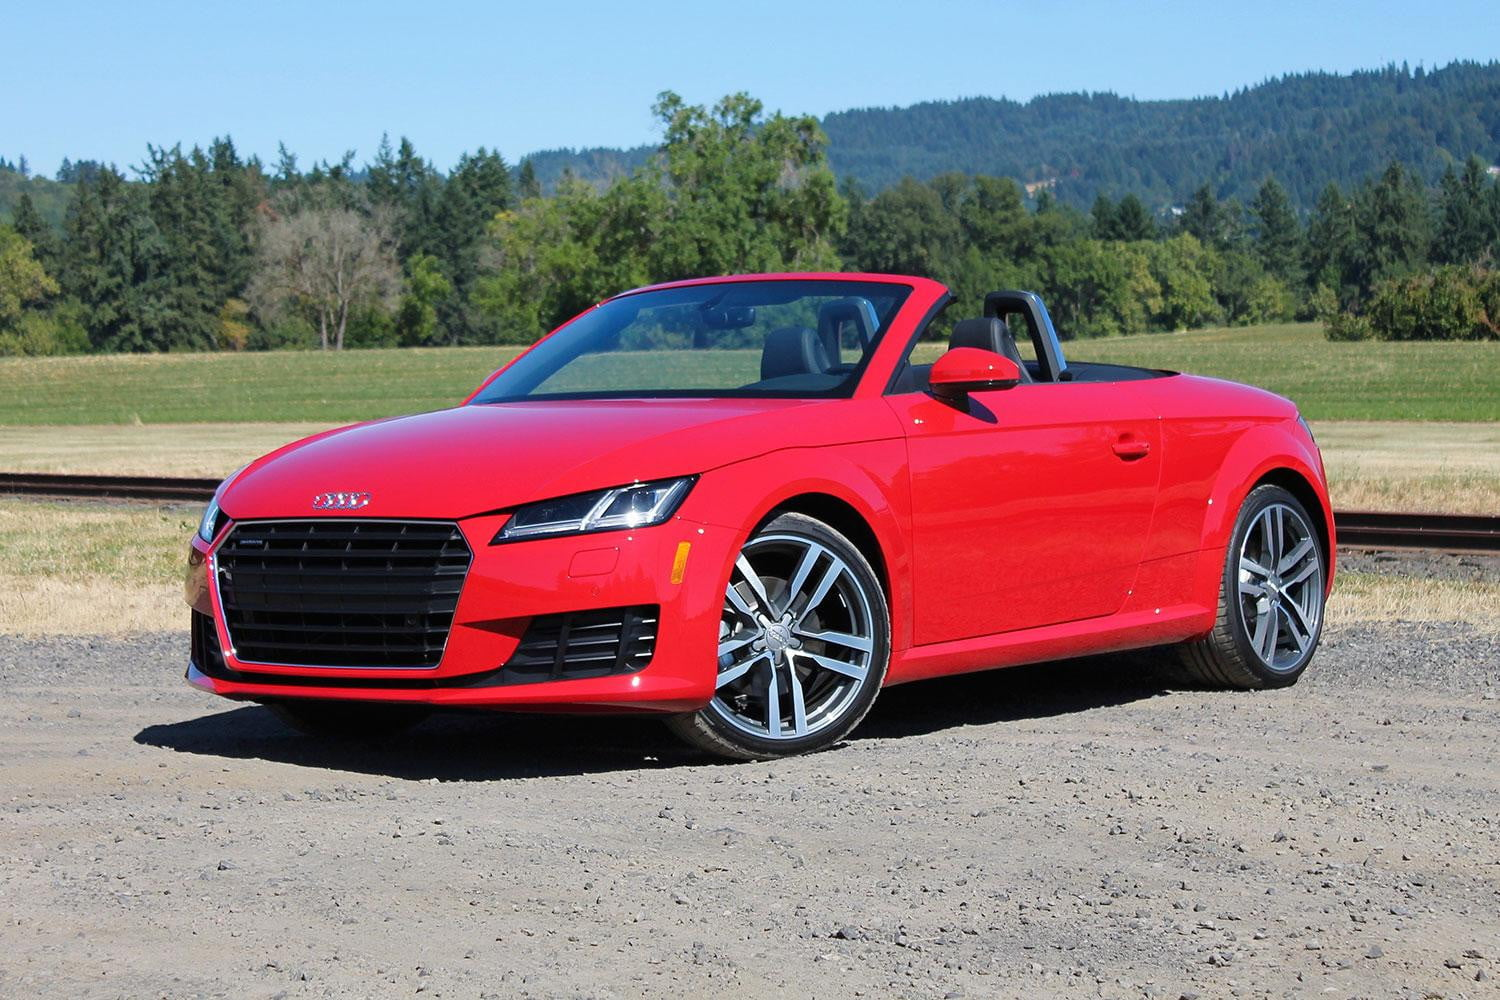 2016 audi tt first drive pictures specs performance digital trends. Black Bedroom Furniture Sets. Home Design Ideas